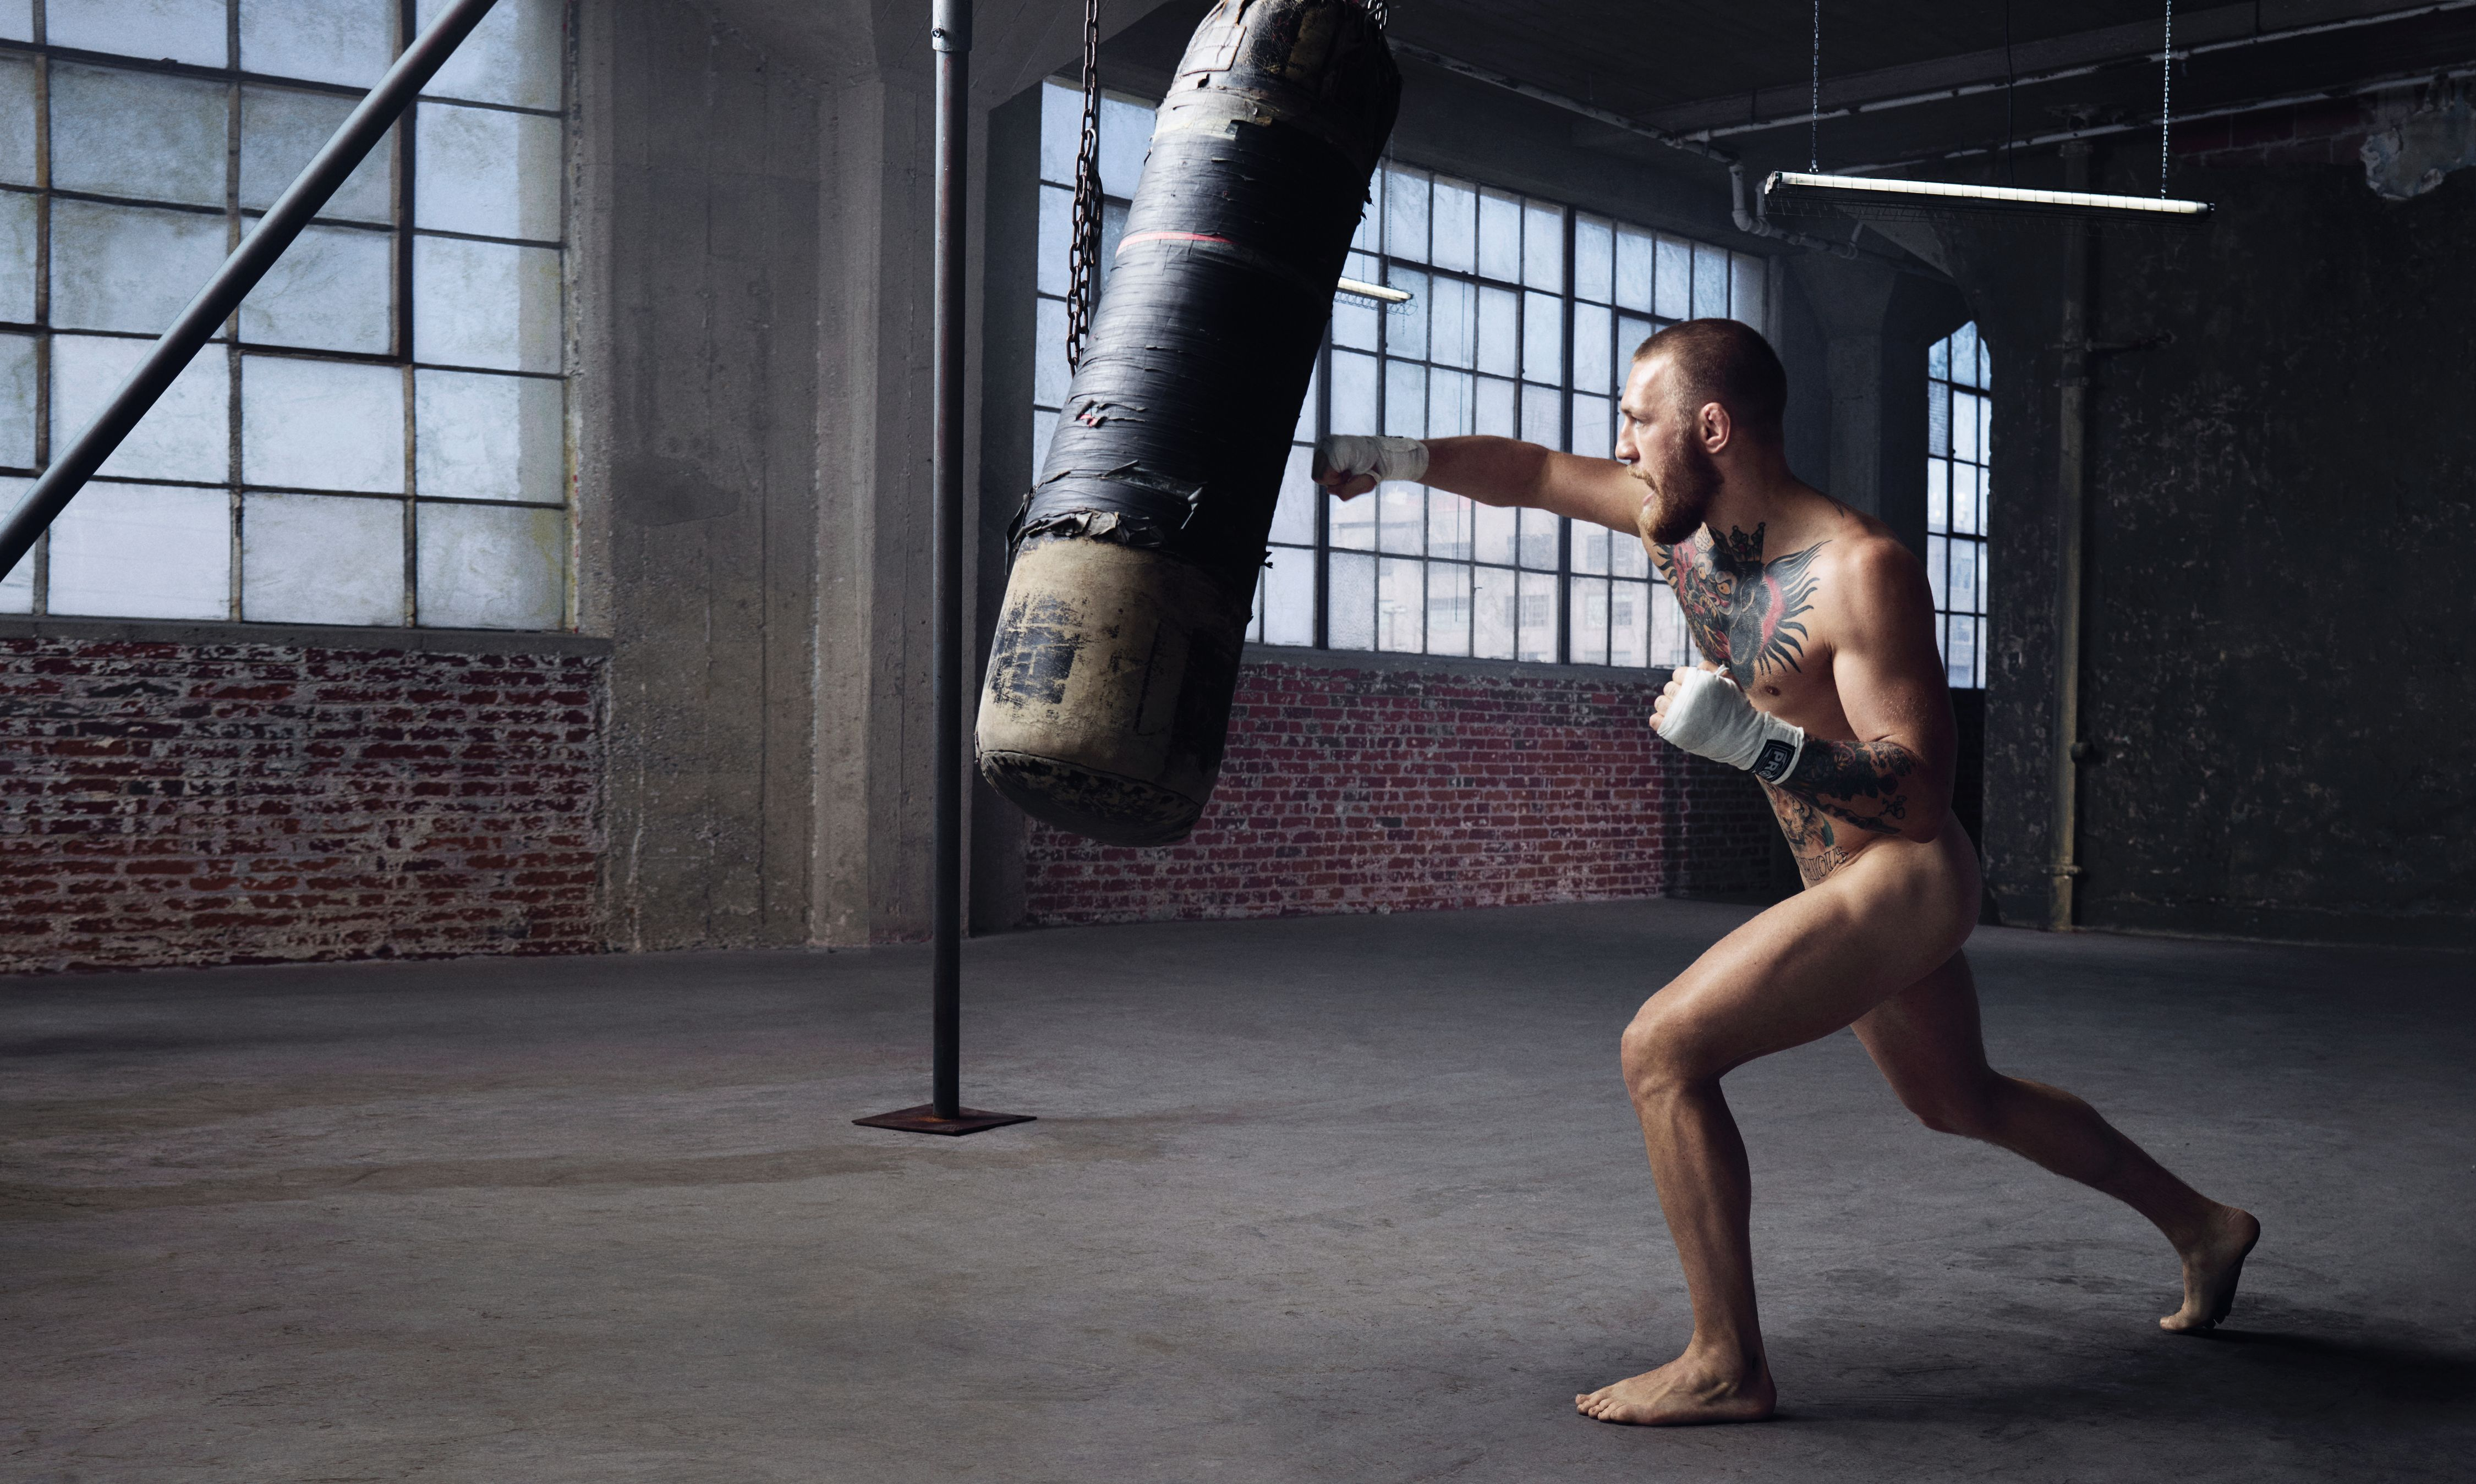 Conor McGregor to grace cover of ESPN The Magazines Body